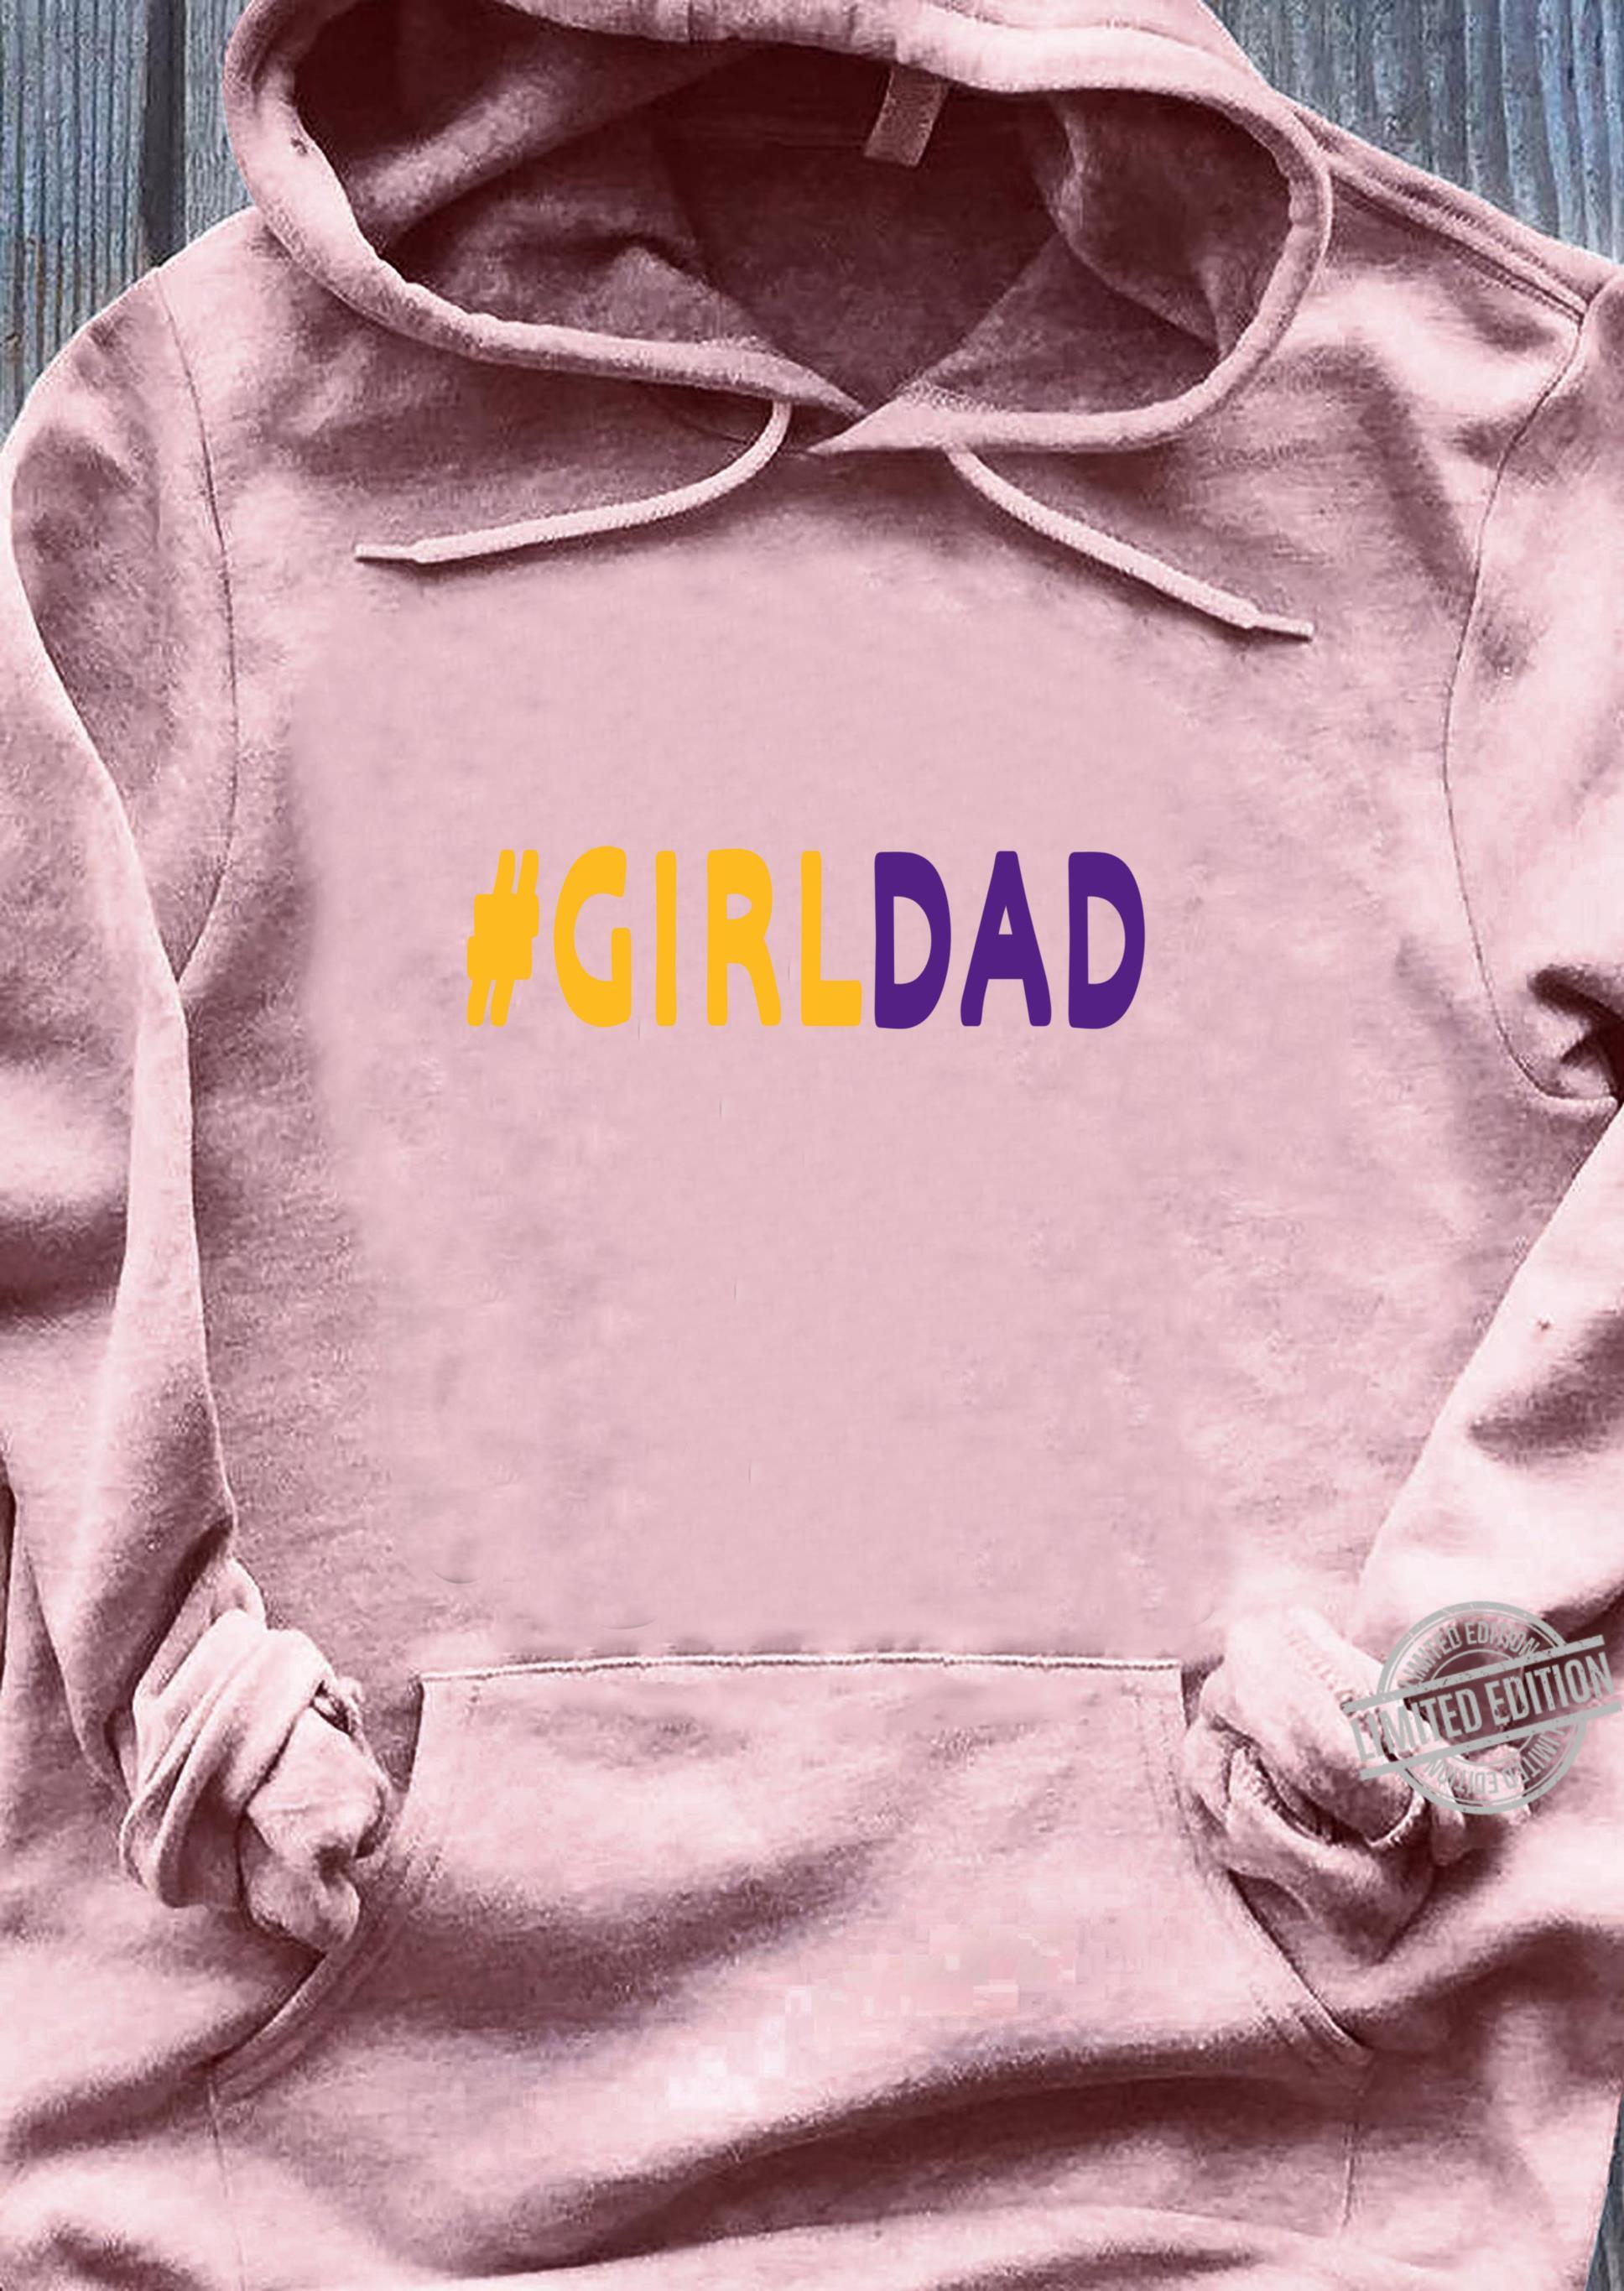 #Girldad Girl Dad Father of Daughters fathers day Family Shirt sweater